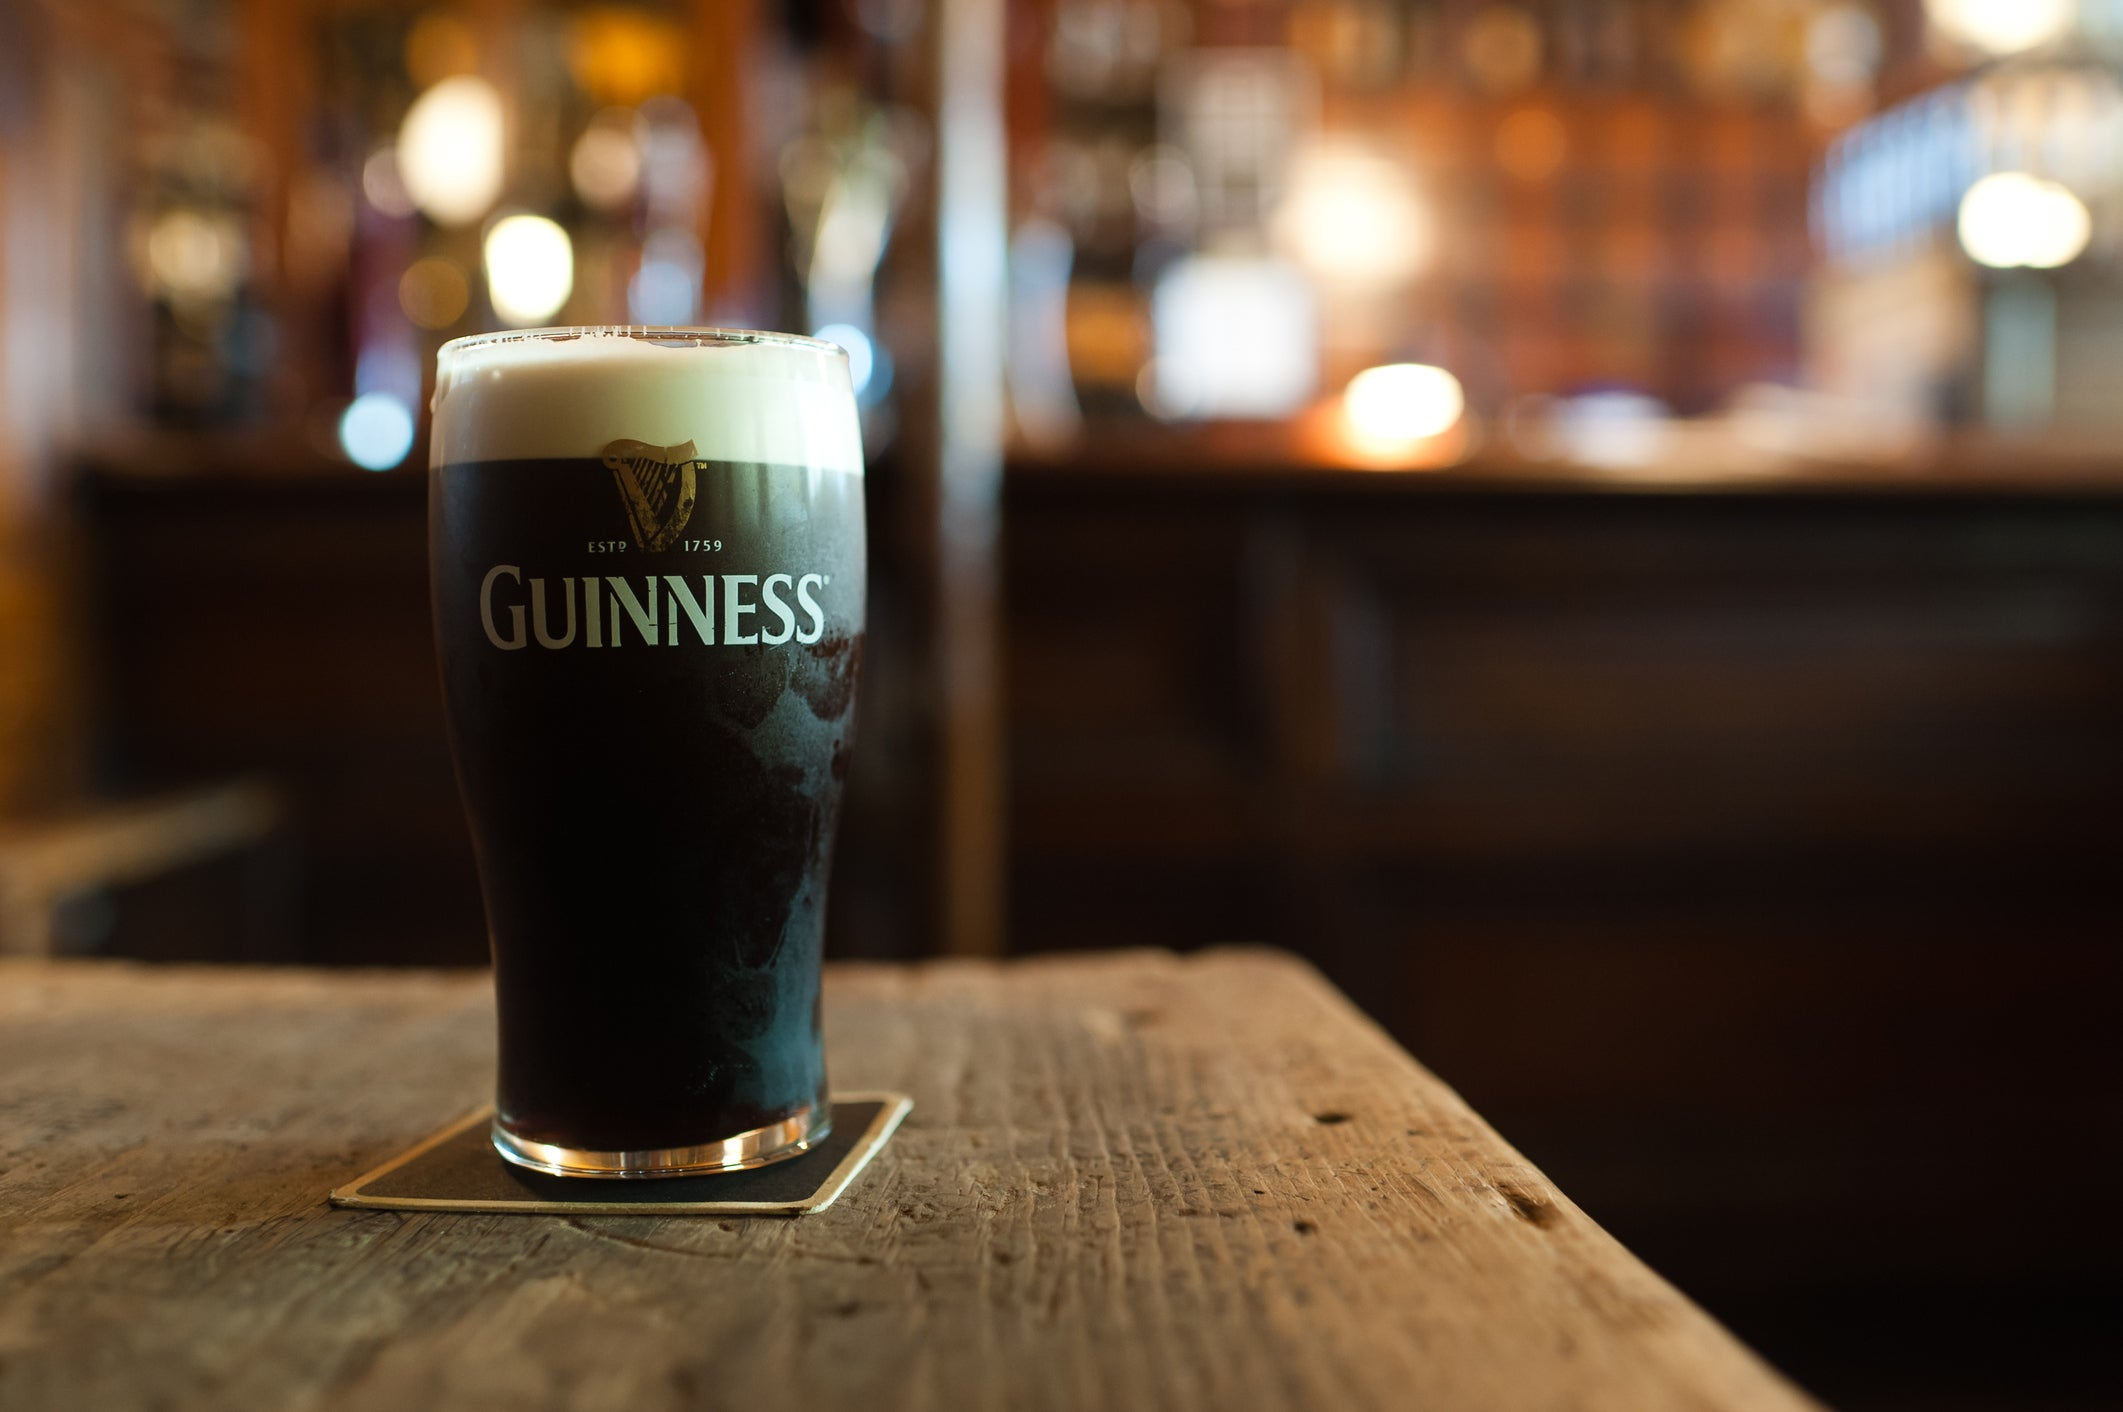 St Patrick's Day 2019: Five Guinness cocktails you can make at home 1